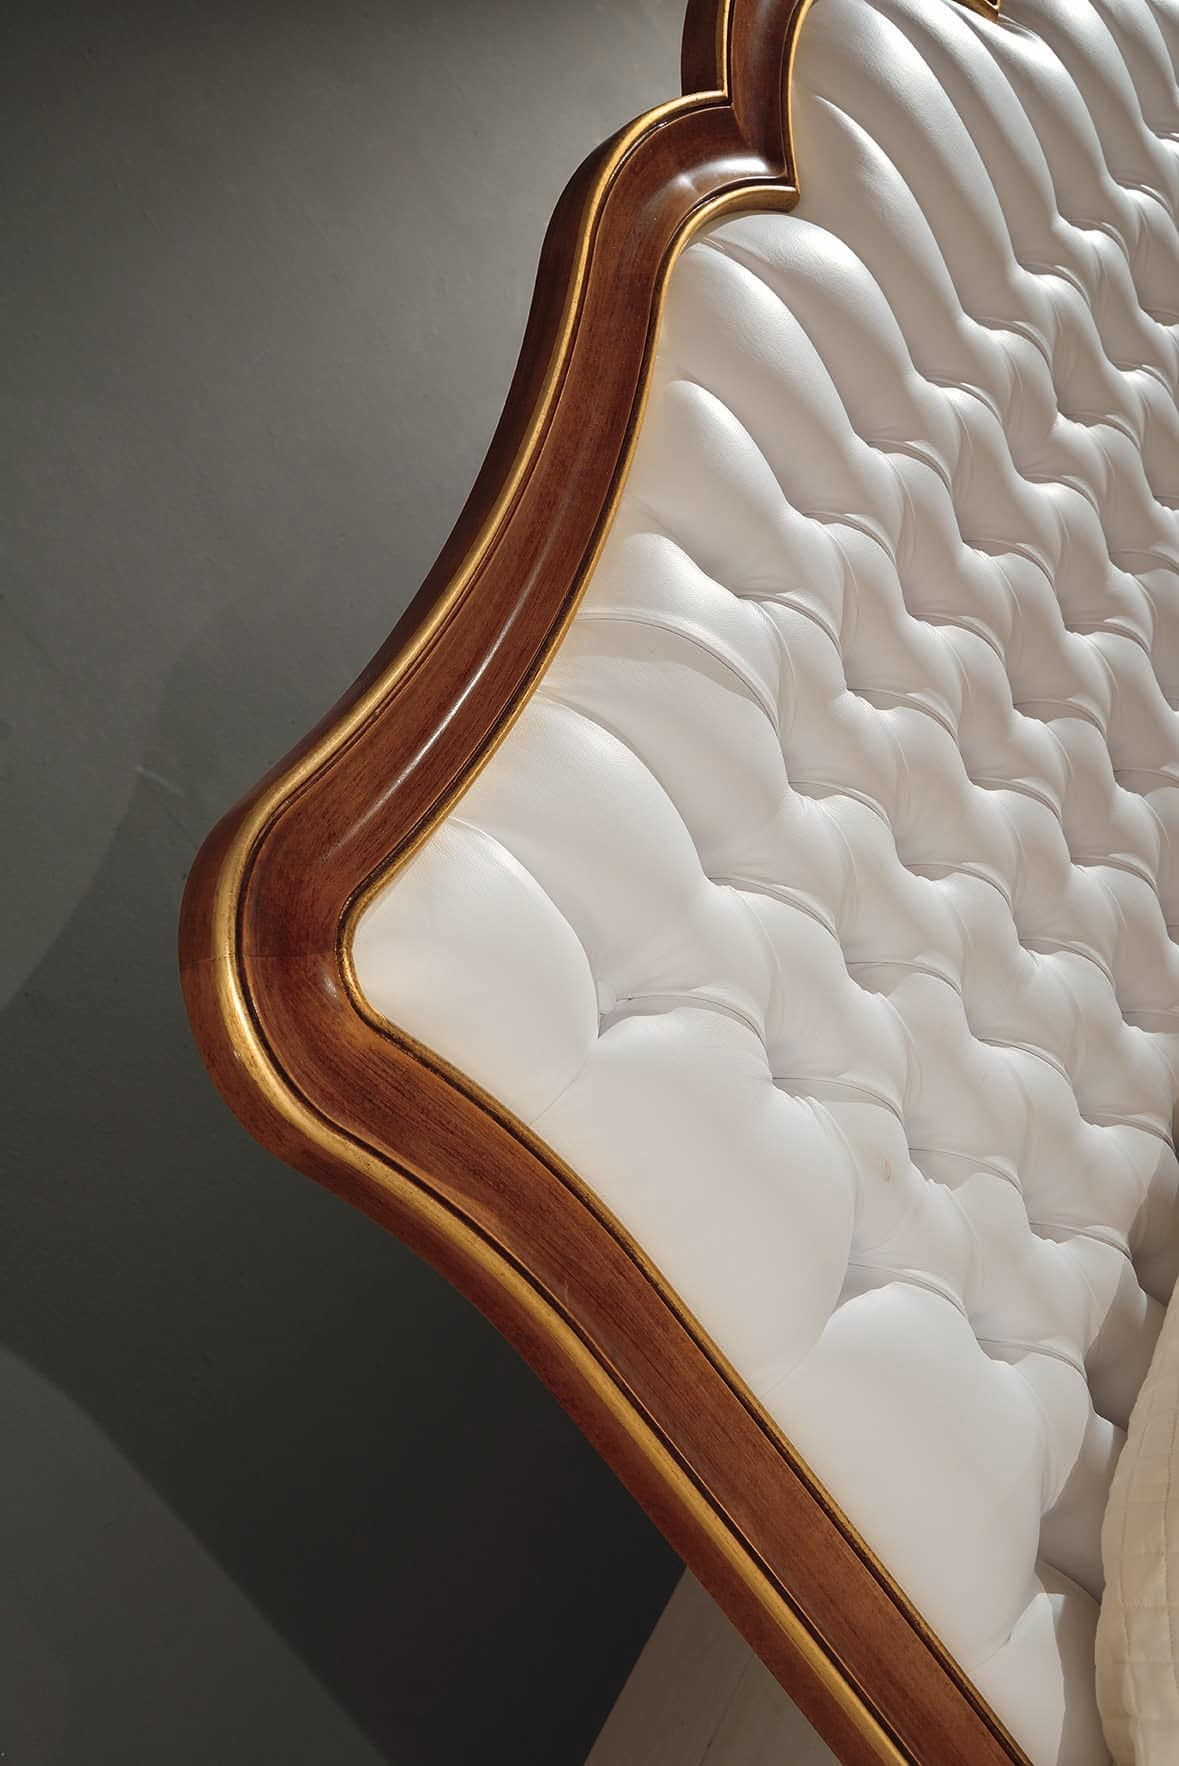 Art. 800, Bed with tufted headboard, in wood with inlays